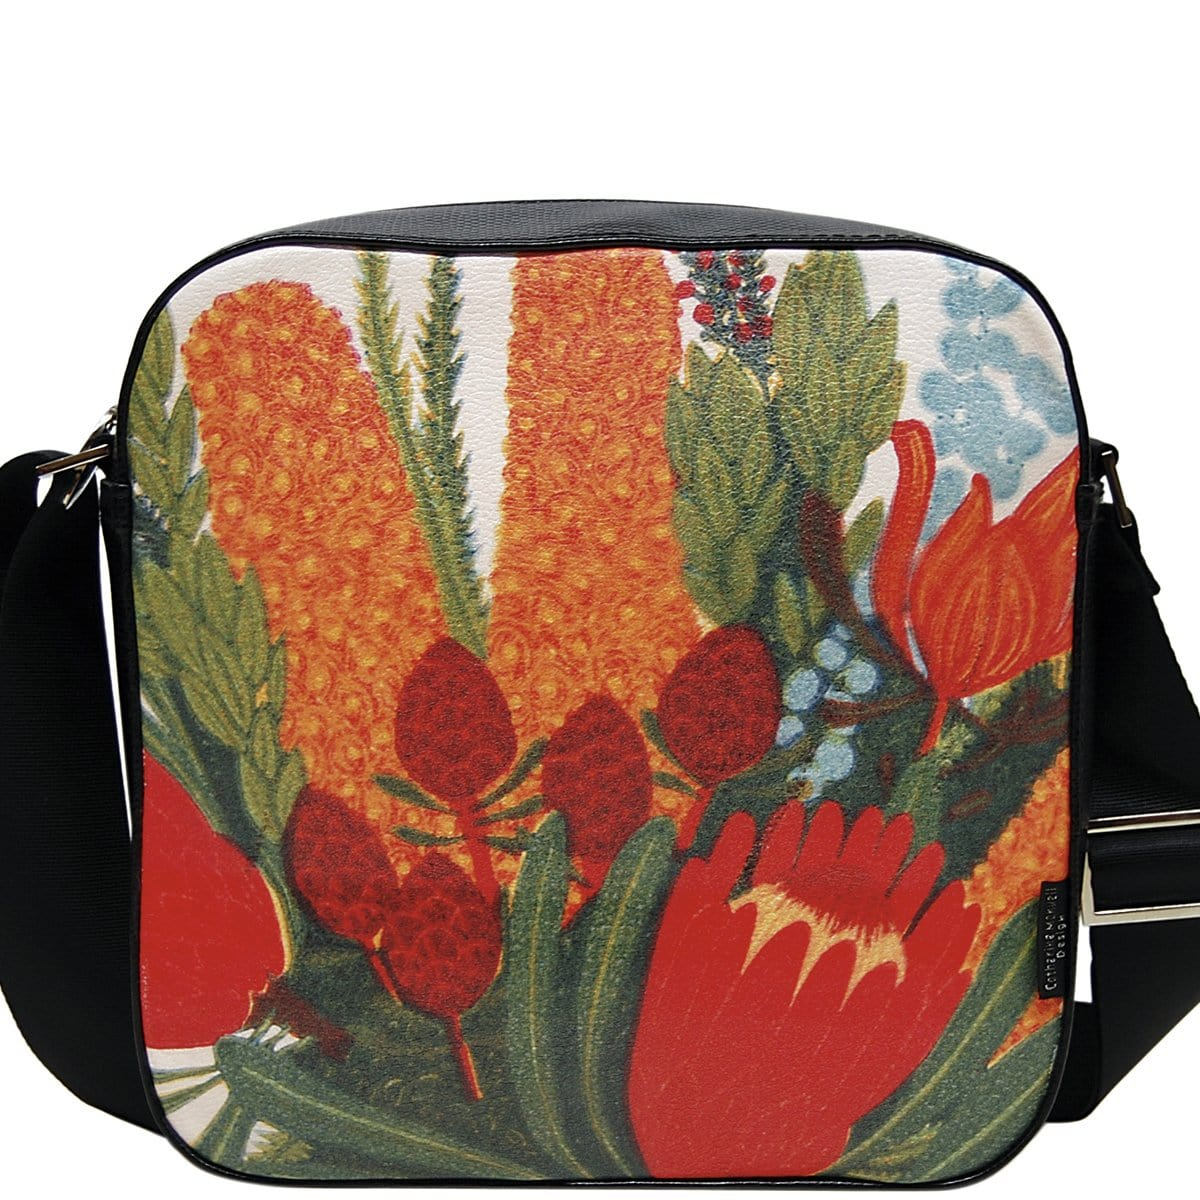 Floral Tote Bag - Native Posy